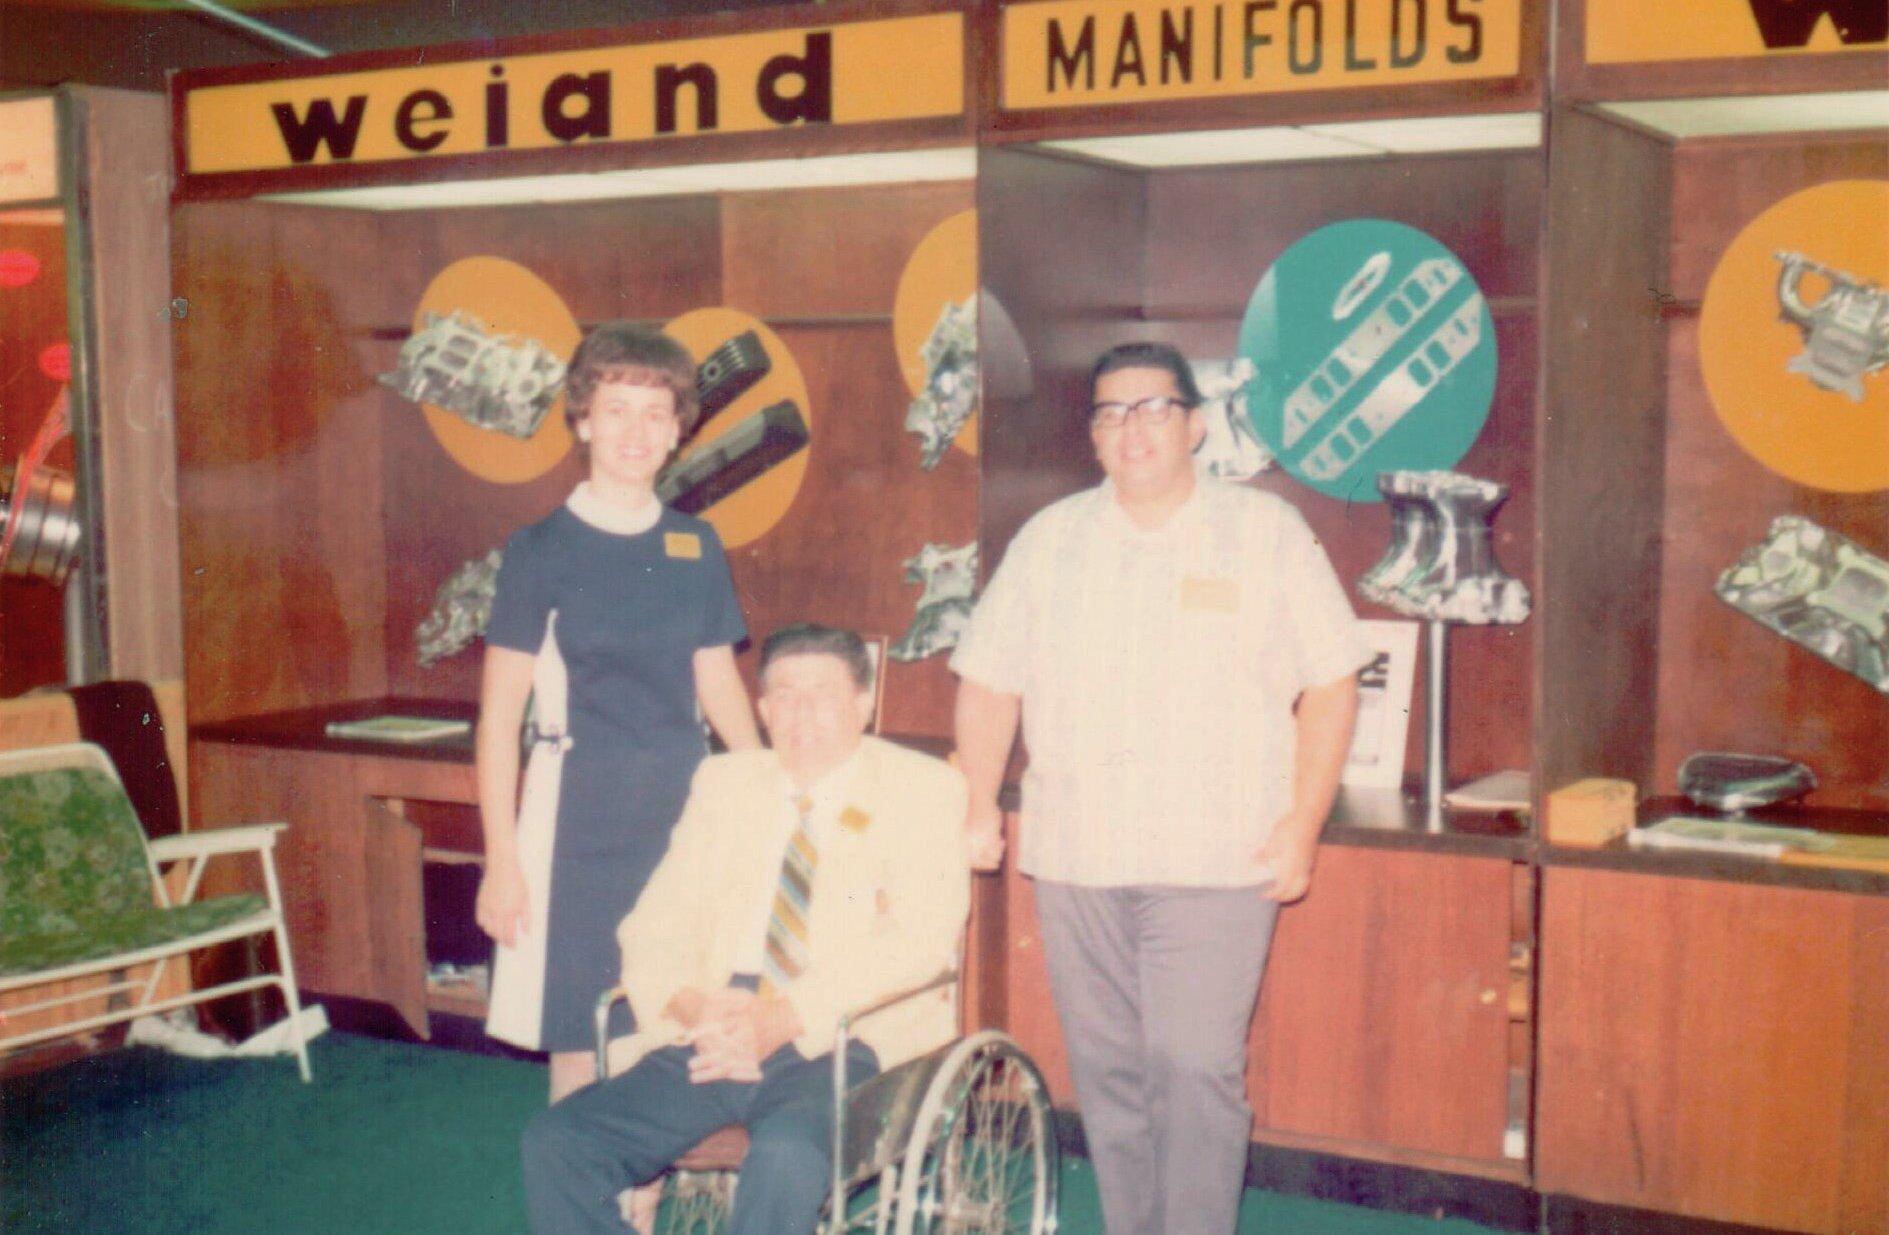 The Weiand booth at Anaheim SEMA: From left: Joan Weiand, Phil Weiand, and Weiand salesman and NHRA Pontiac Stocker racer Richard Salcedo.